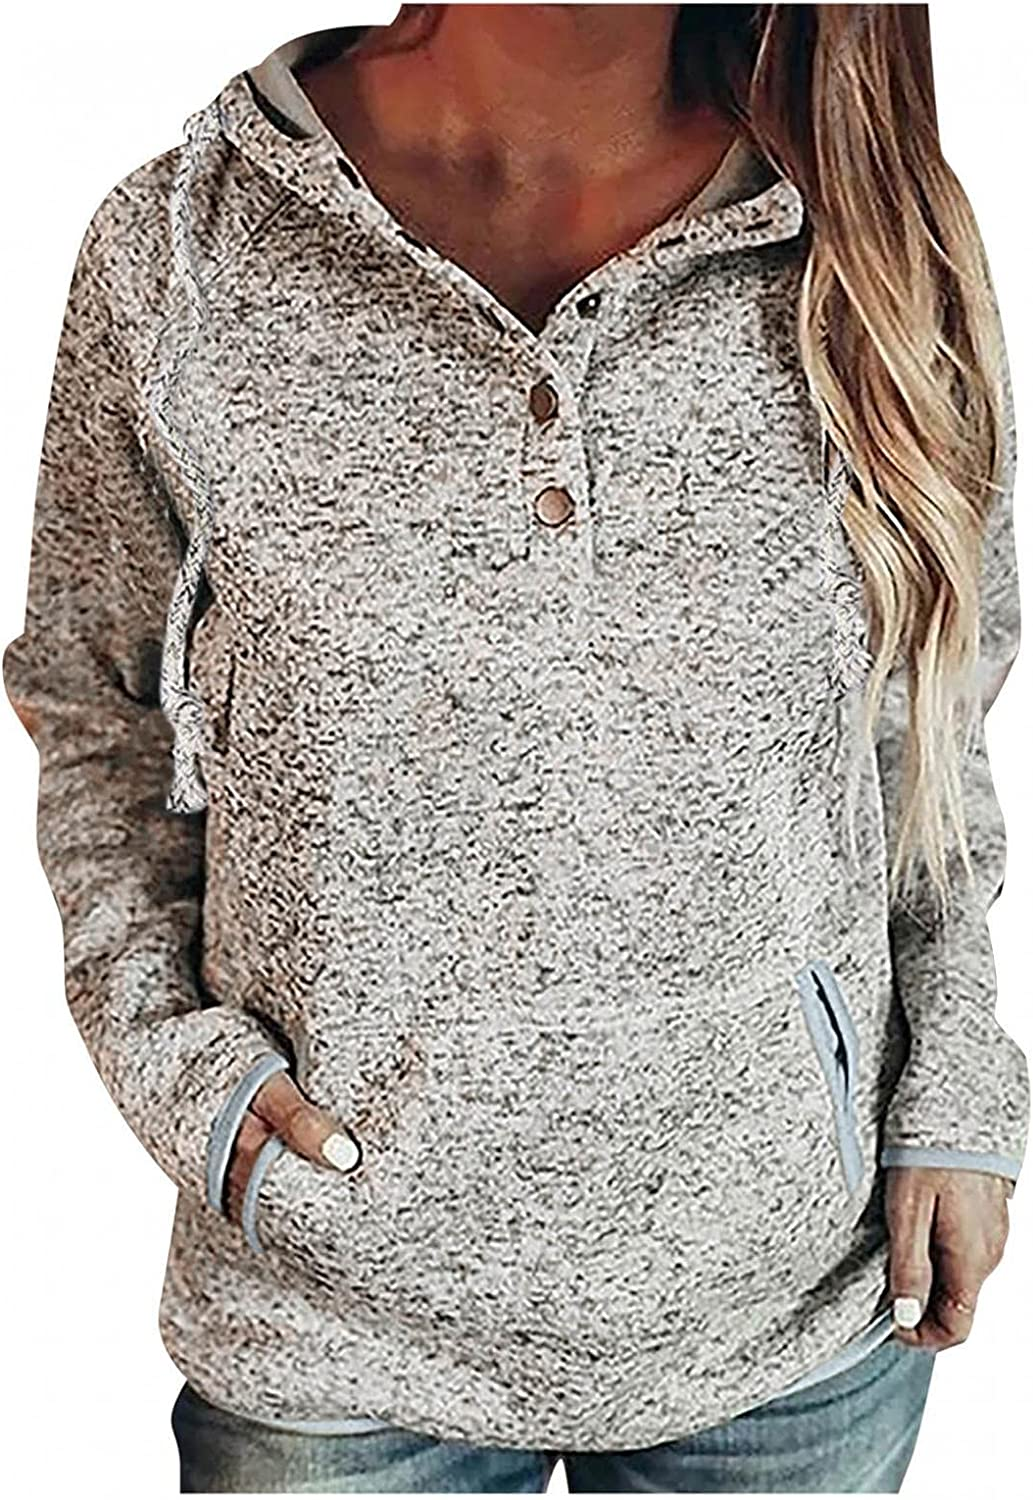 felwors Sweatshirt for Women, Womens Button Collar Drawstring Long Sleeve Casual Hoodies Pullover Tops with Pockets